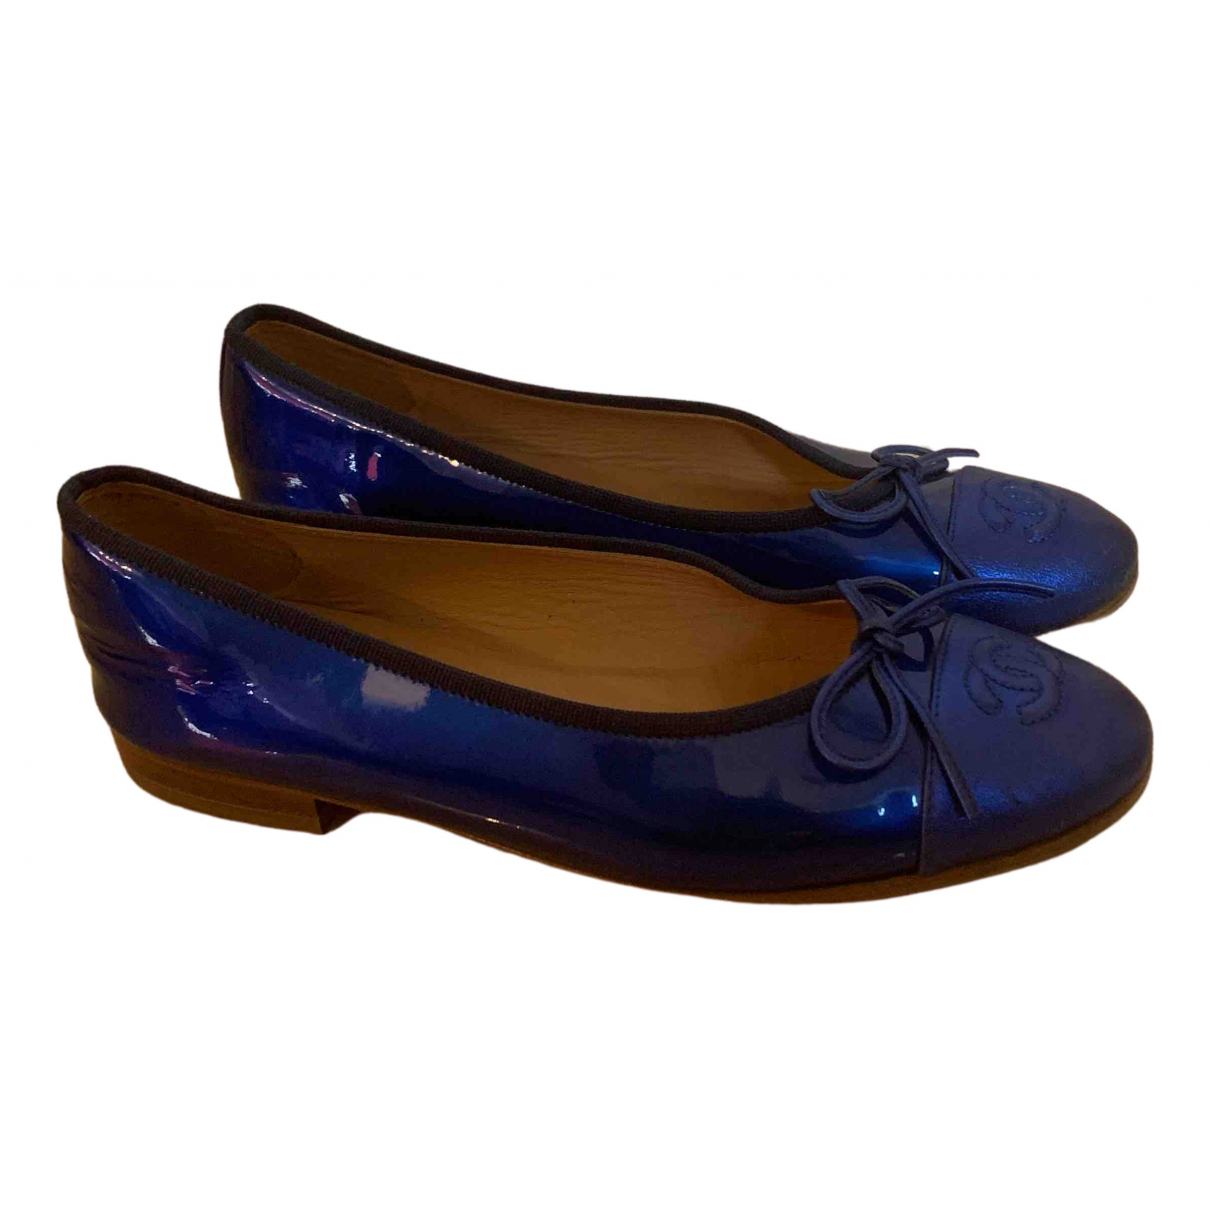 Chanel \N Blue Patent leather Ballet flats for Women 36.5 EU